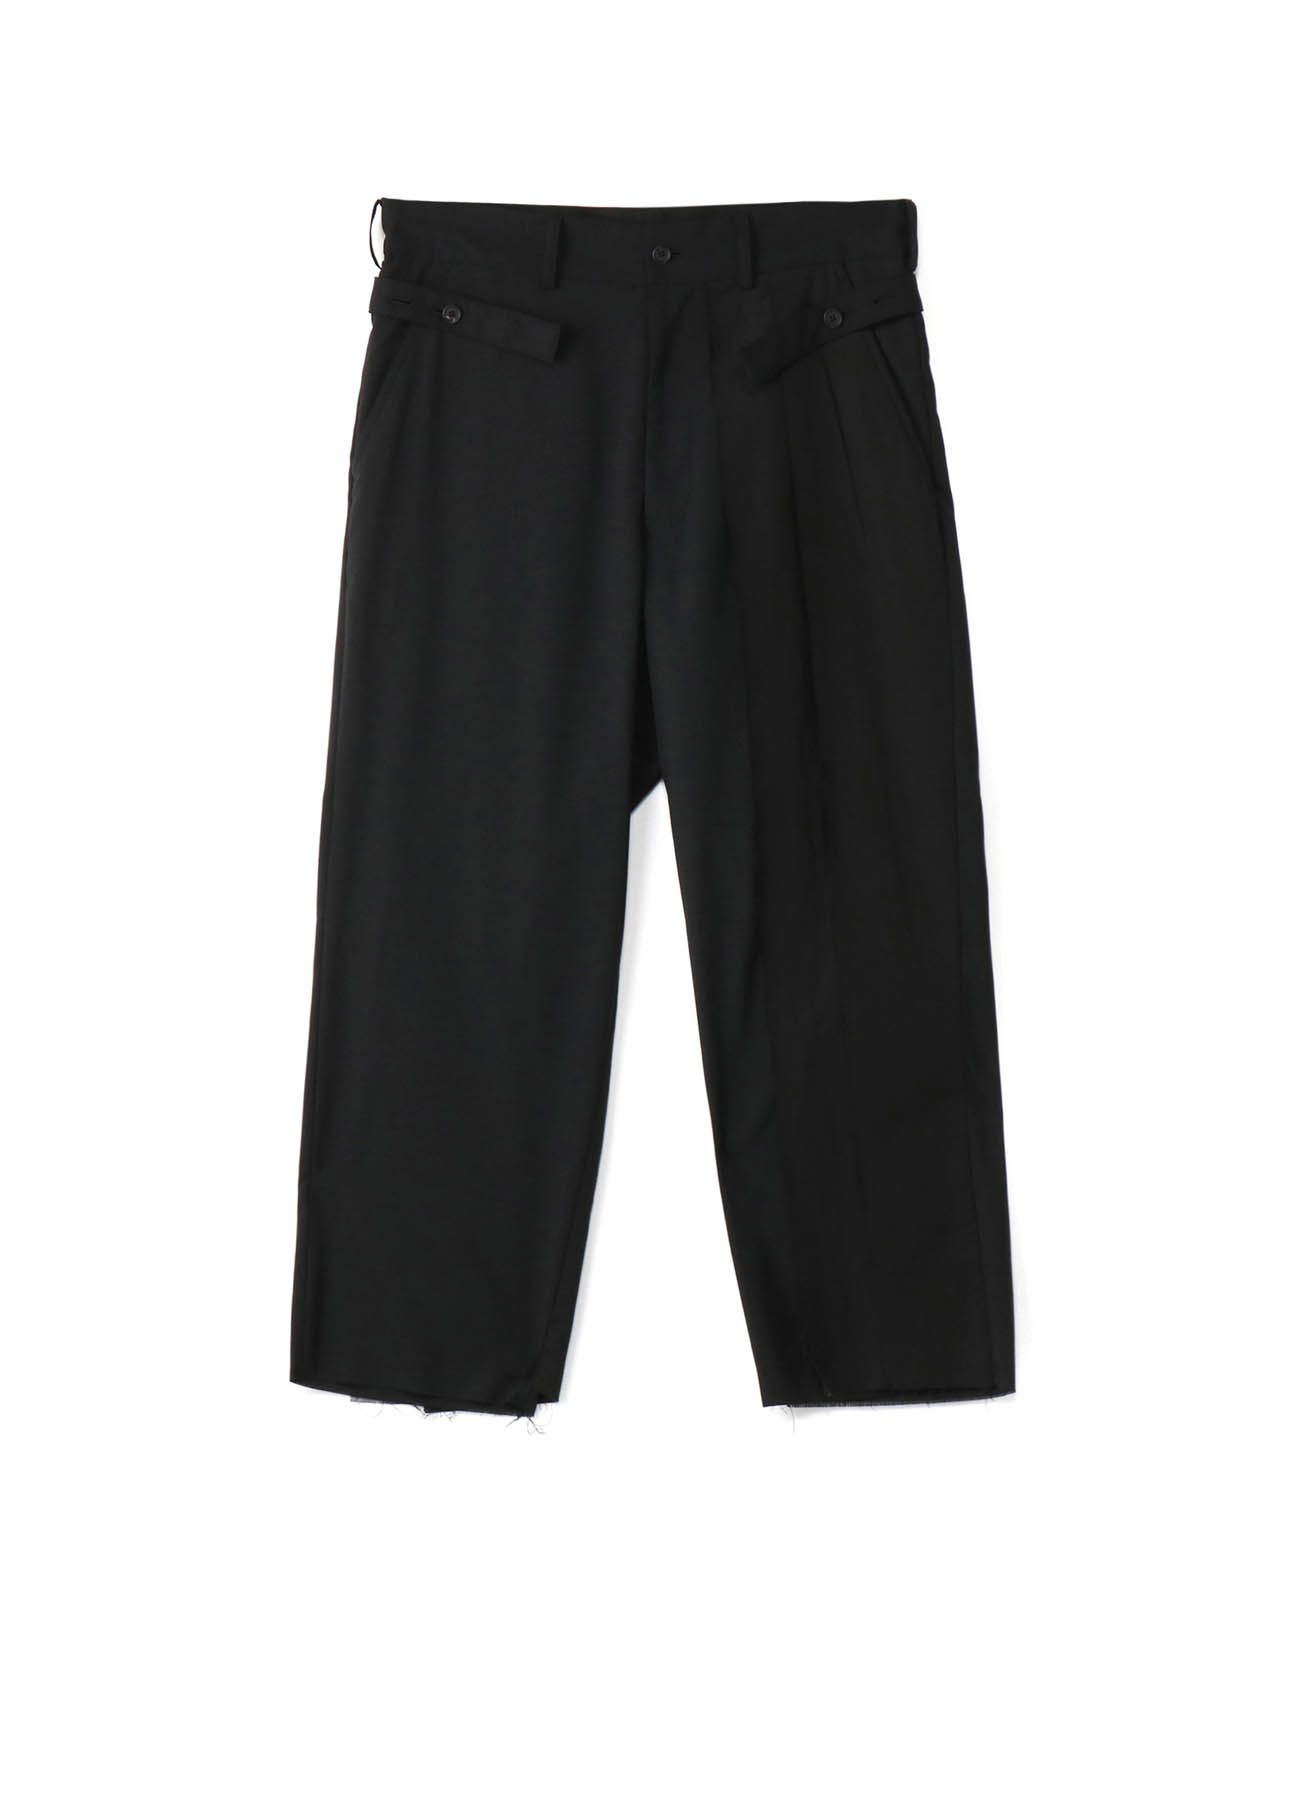 T/W Tropical Stretch 3 layers No tuck Pants